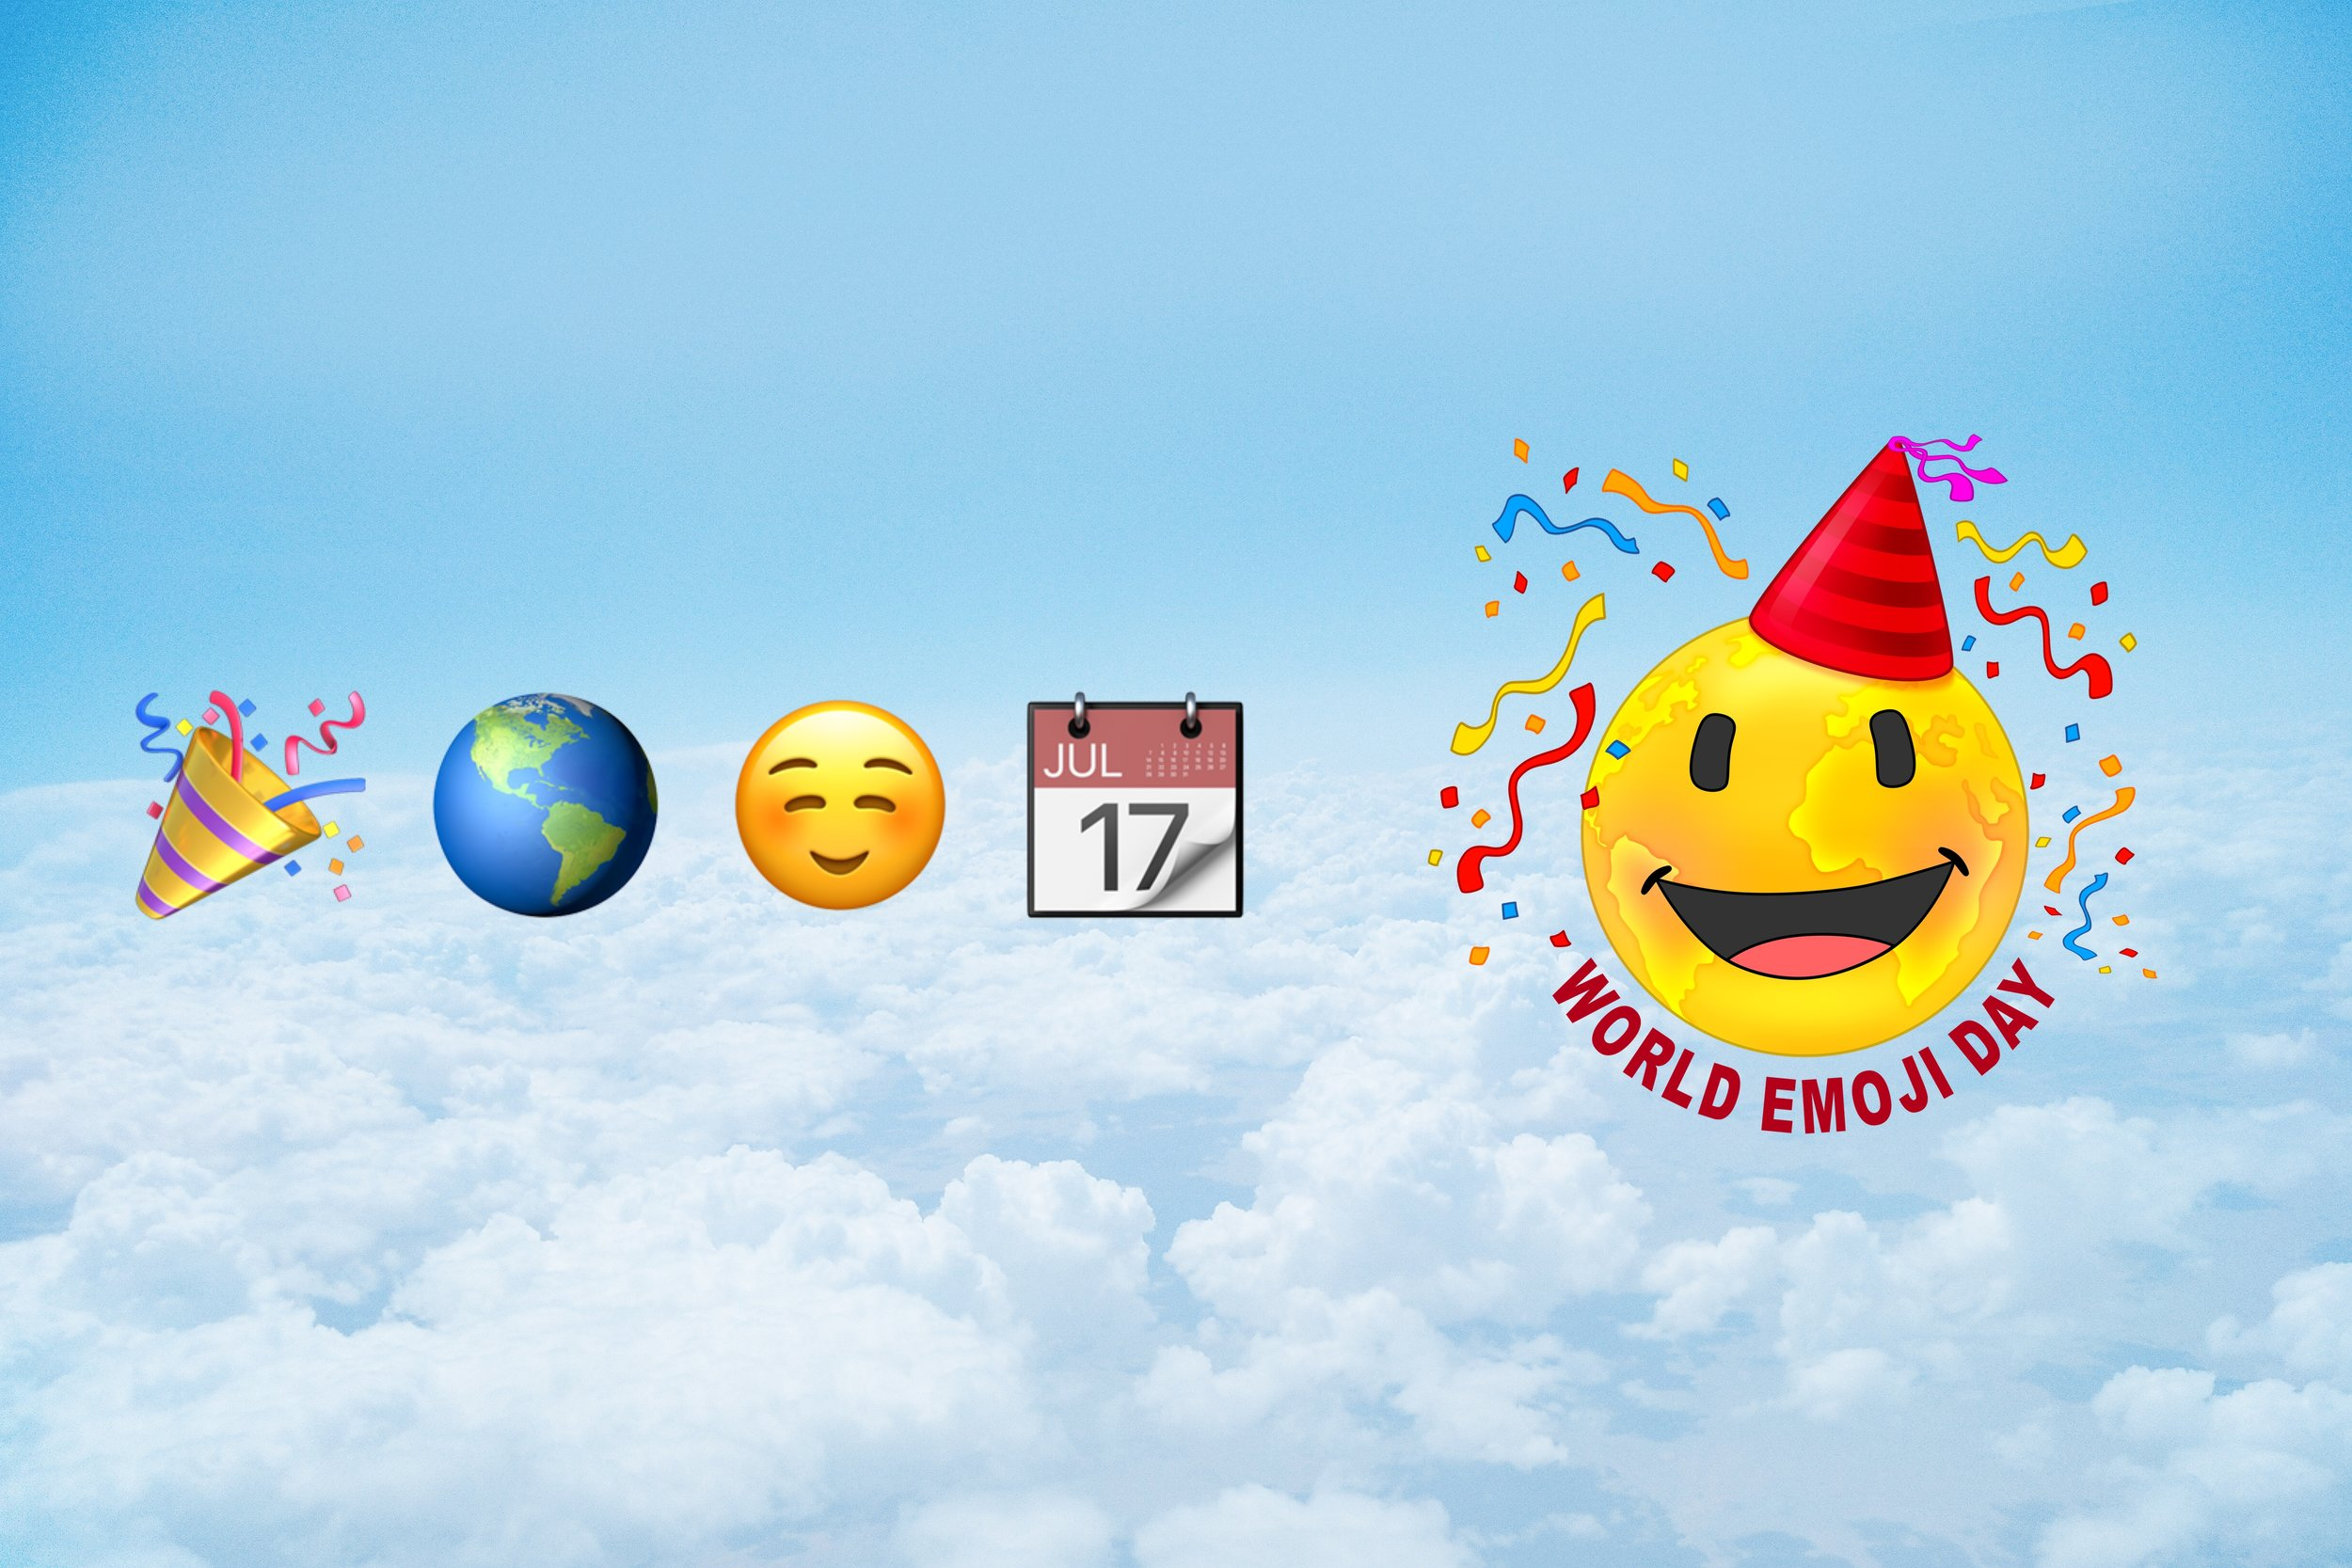 world emoji day july